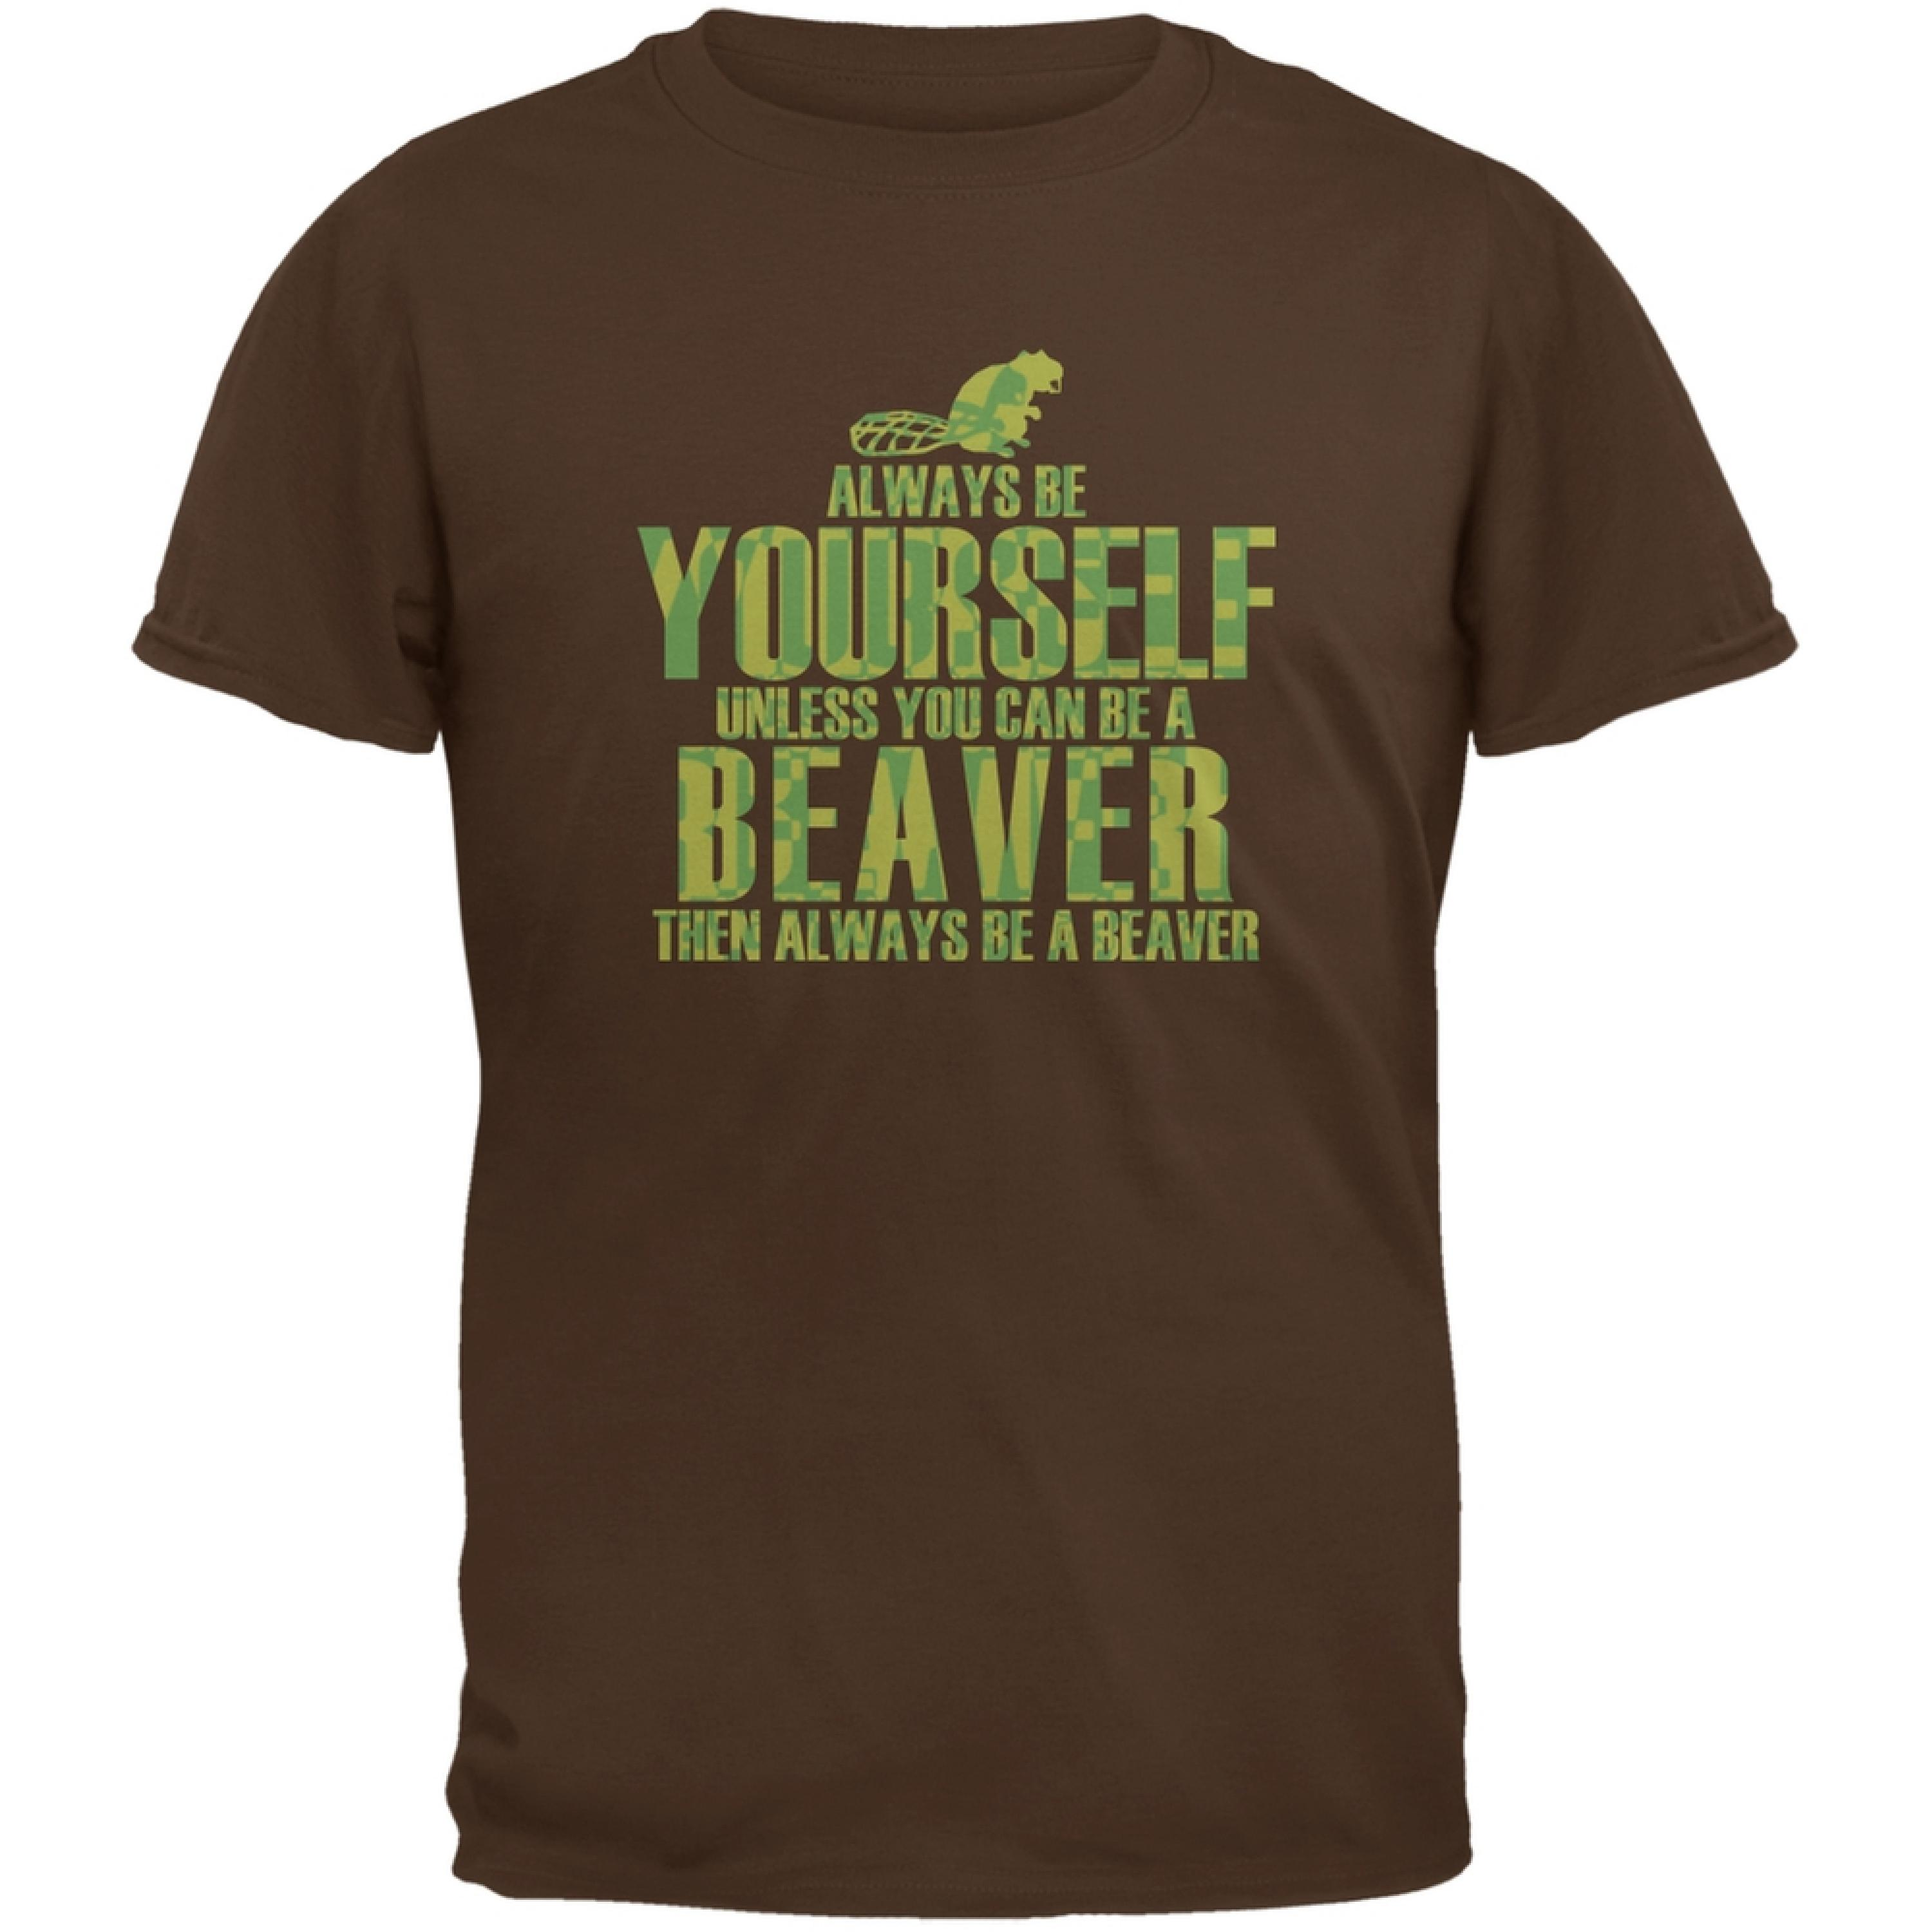 Always Be Yourself Beaver Brown Adult T-Shirt